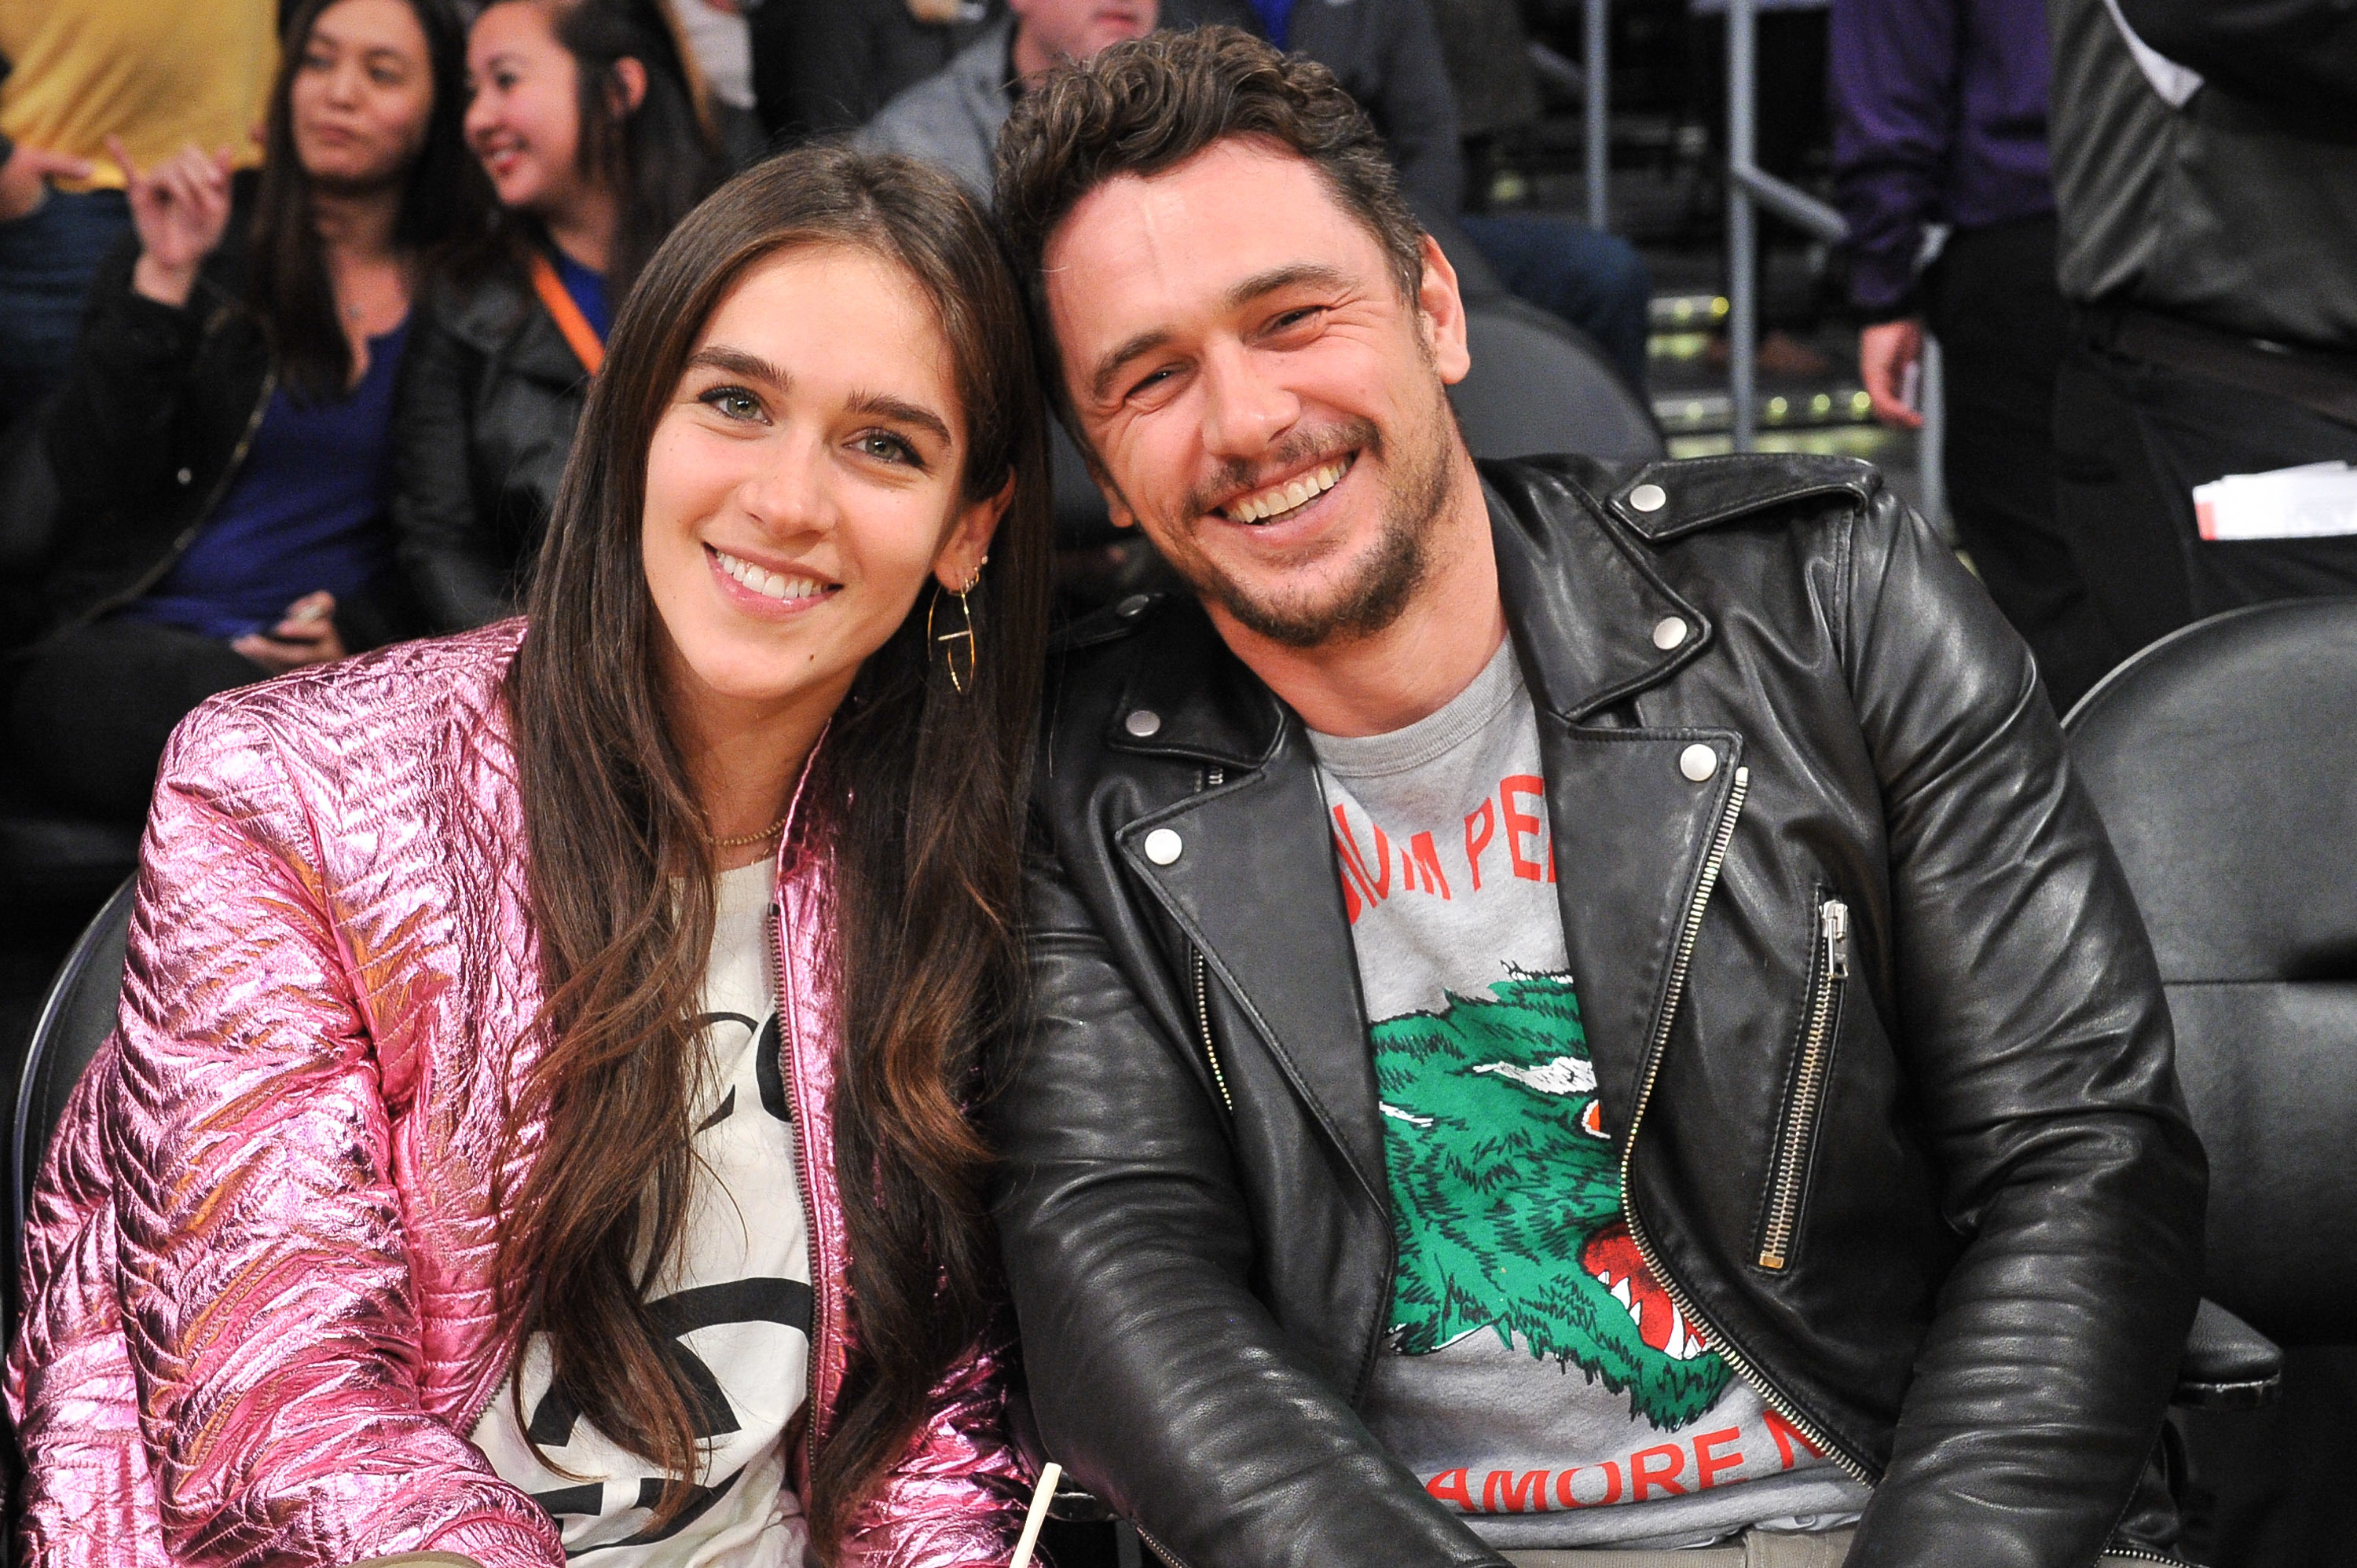 Isabel Pakzad and James Franco attend a basketball game between the Los Angeles Lakers and the Golden State Warriors at Staples Center in Los Angeles on Jan. 21, 2019.